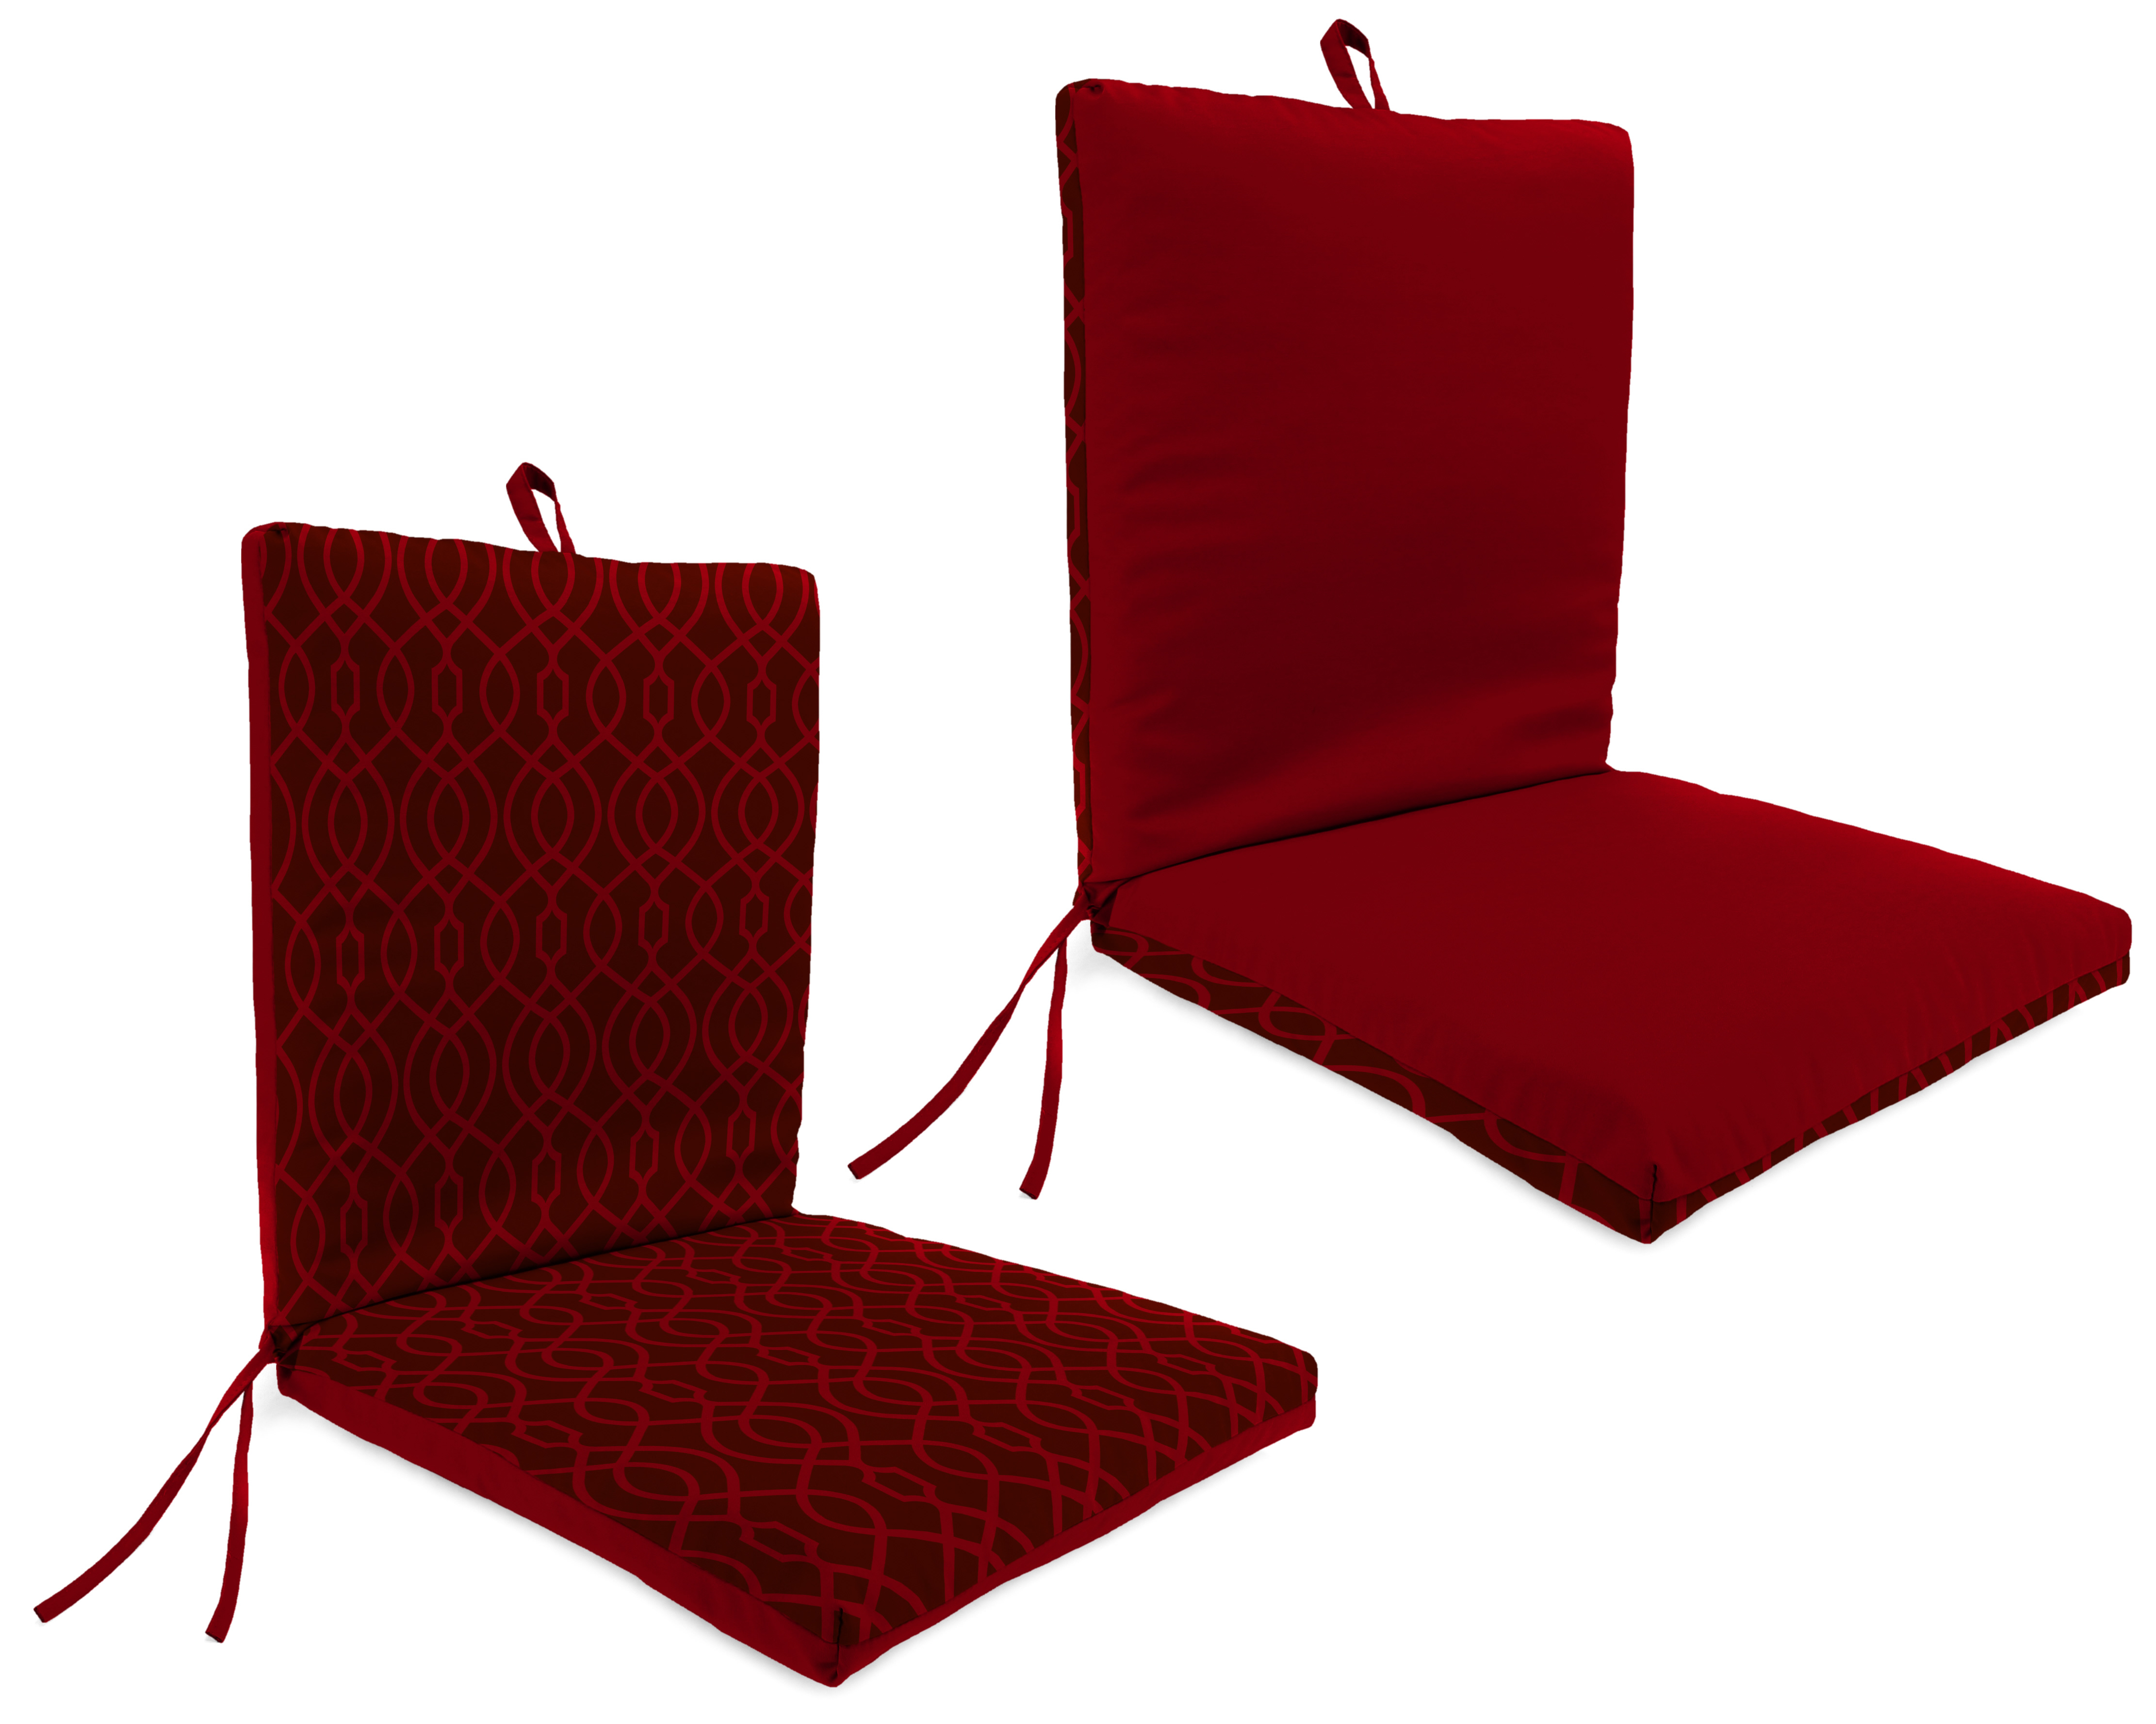 Garden Oasis Margate Red Clean Look Patio Chair Cushion